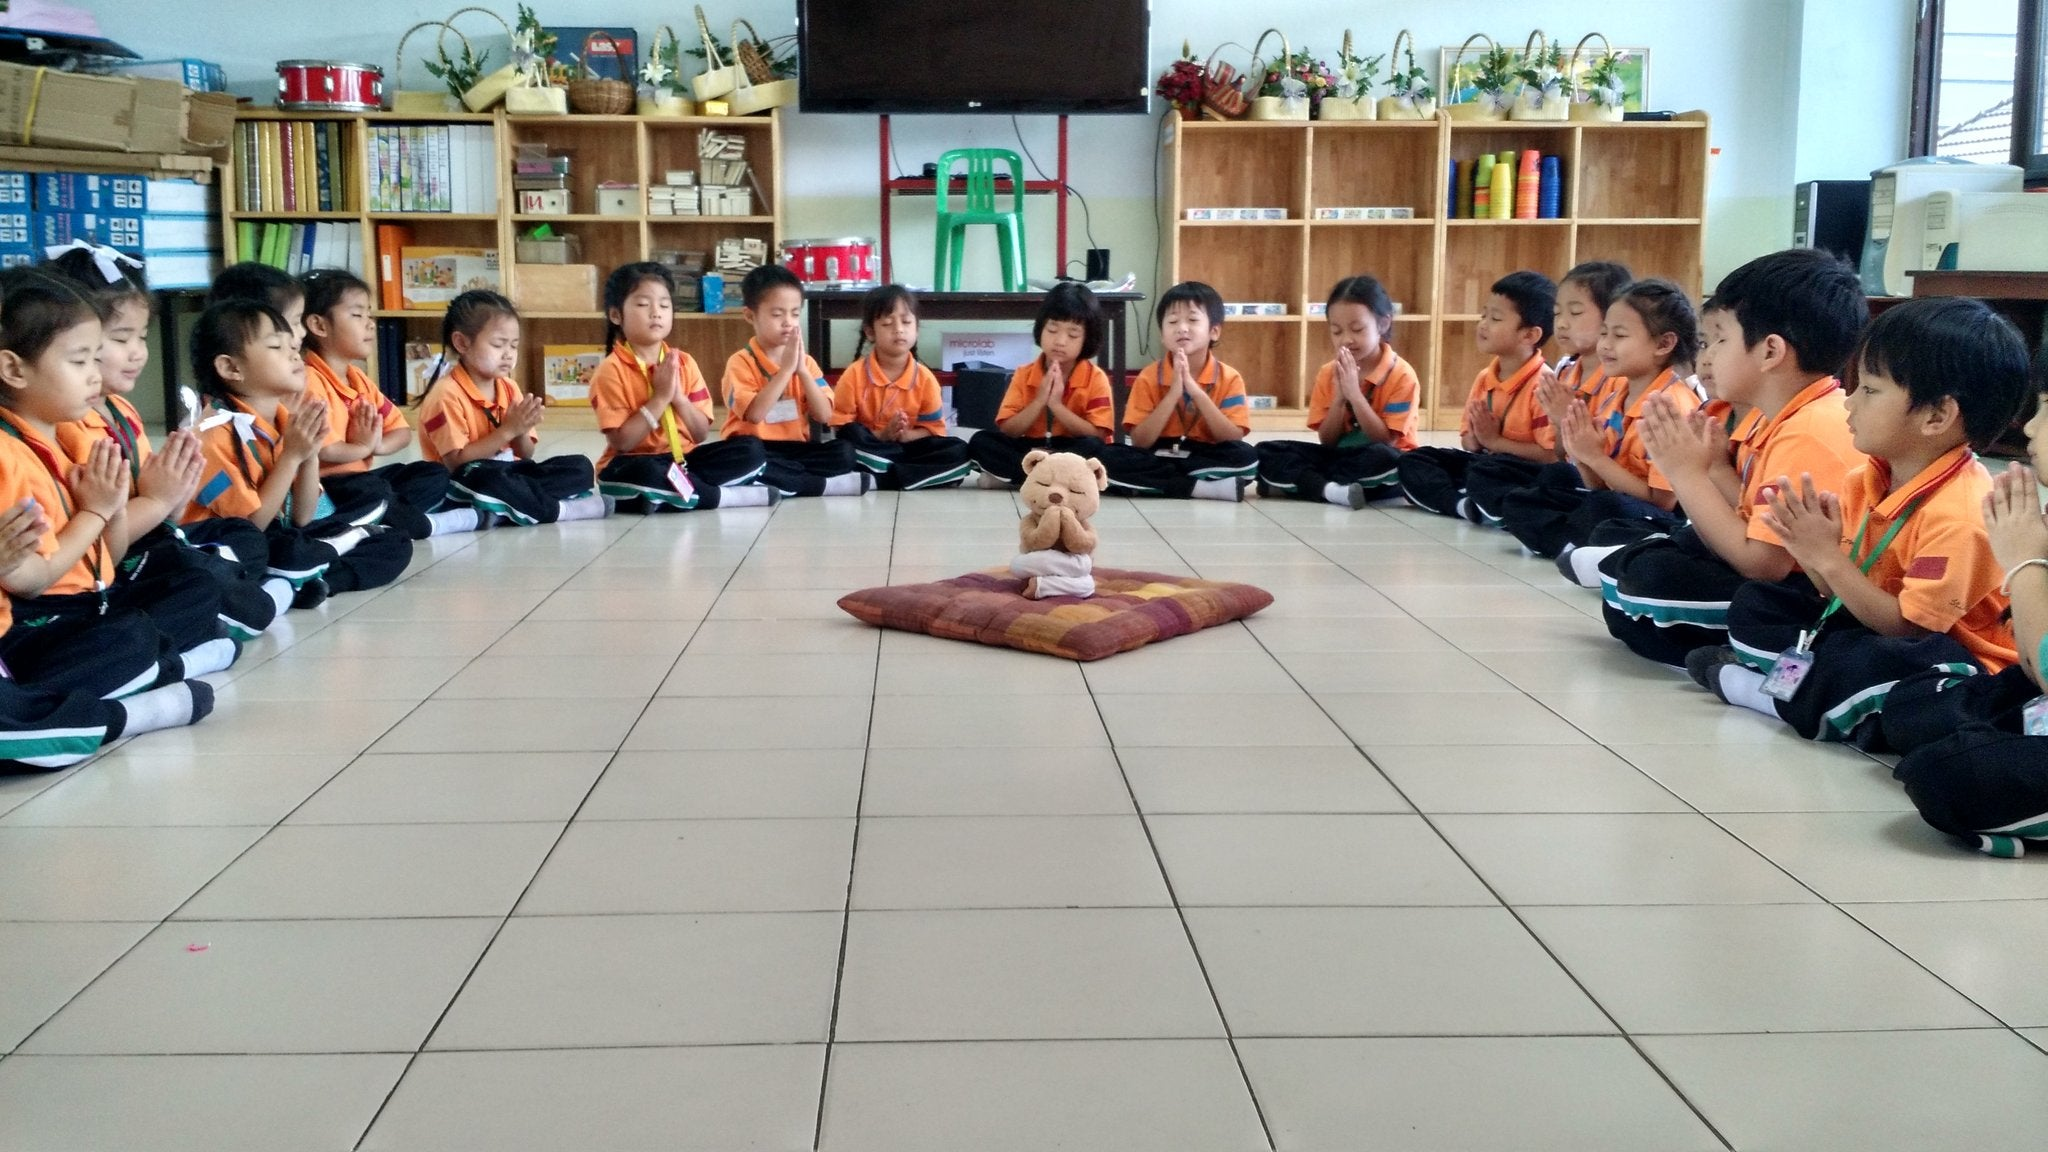 Classroom Meditation with Meddy Teddy